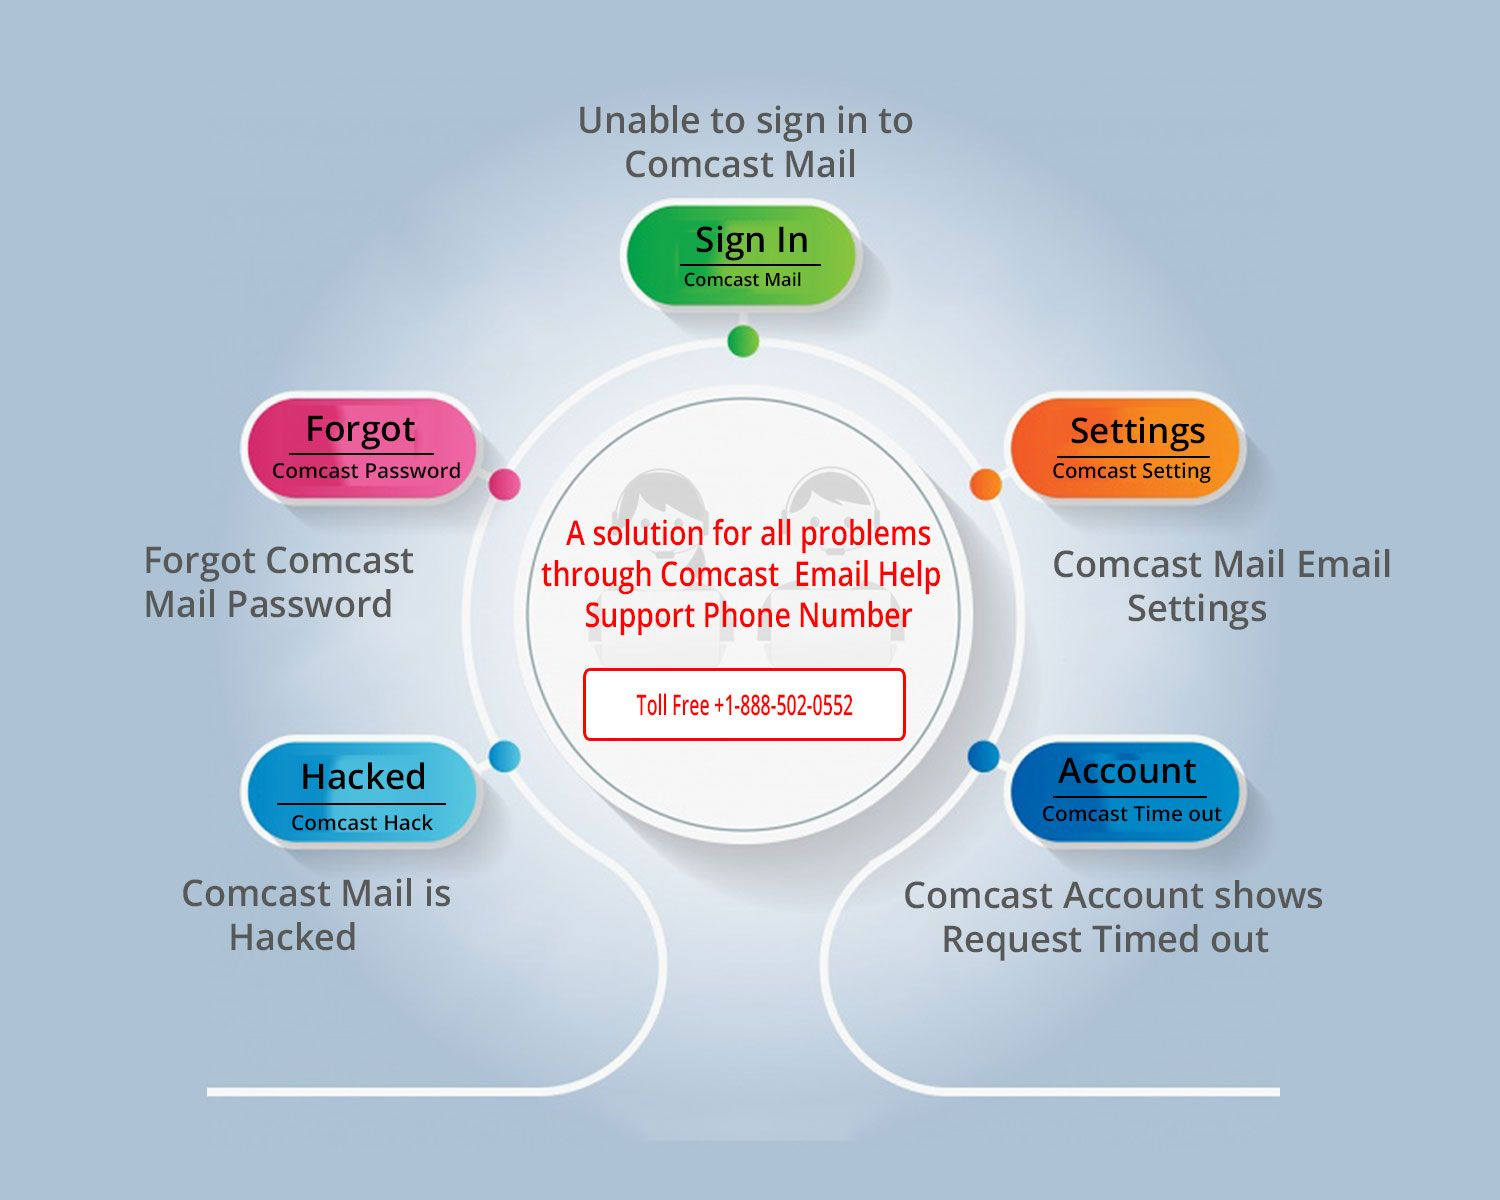 Got Stuck In Comcast Email Issues We Ll Help You Out Our Comcast Email Technical Support Team Is Always Powerpoint Design Mail Sign Phone Numbers